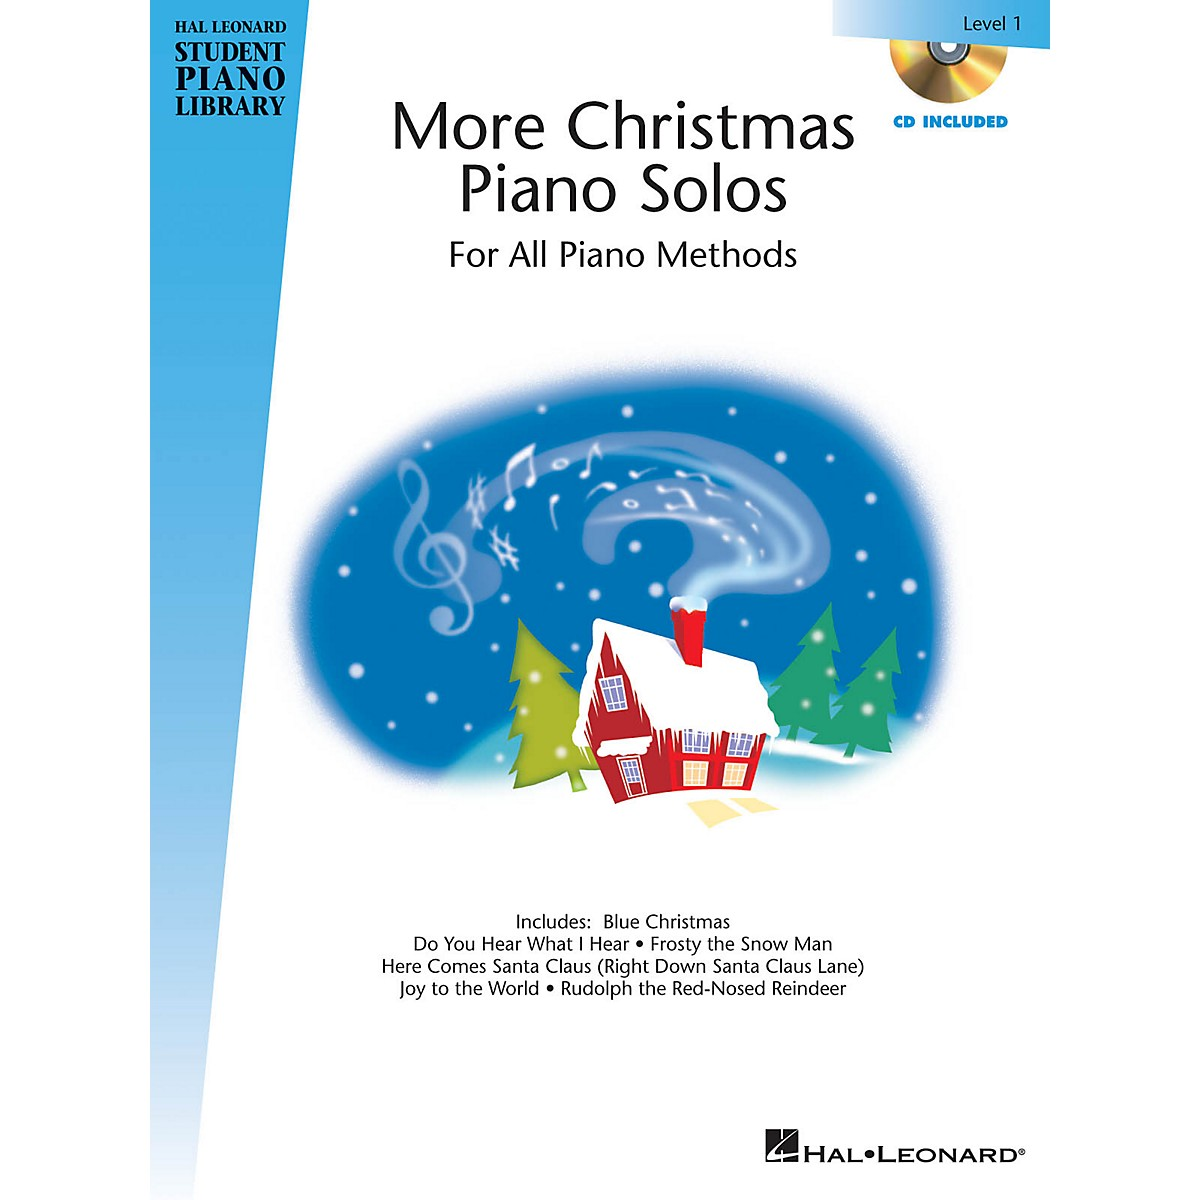 Hal Leonard More Christmas Piano Solos - Level 1 Piano Library Series Book with CD